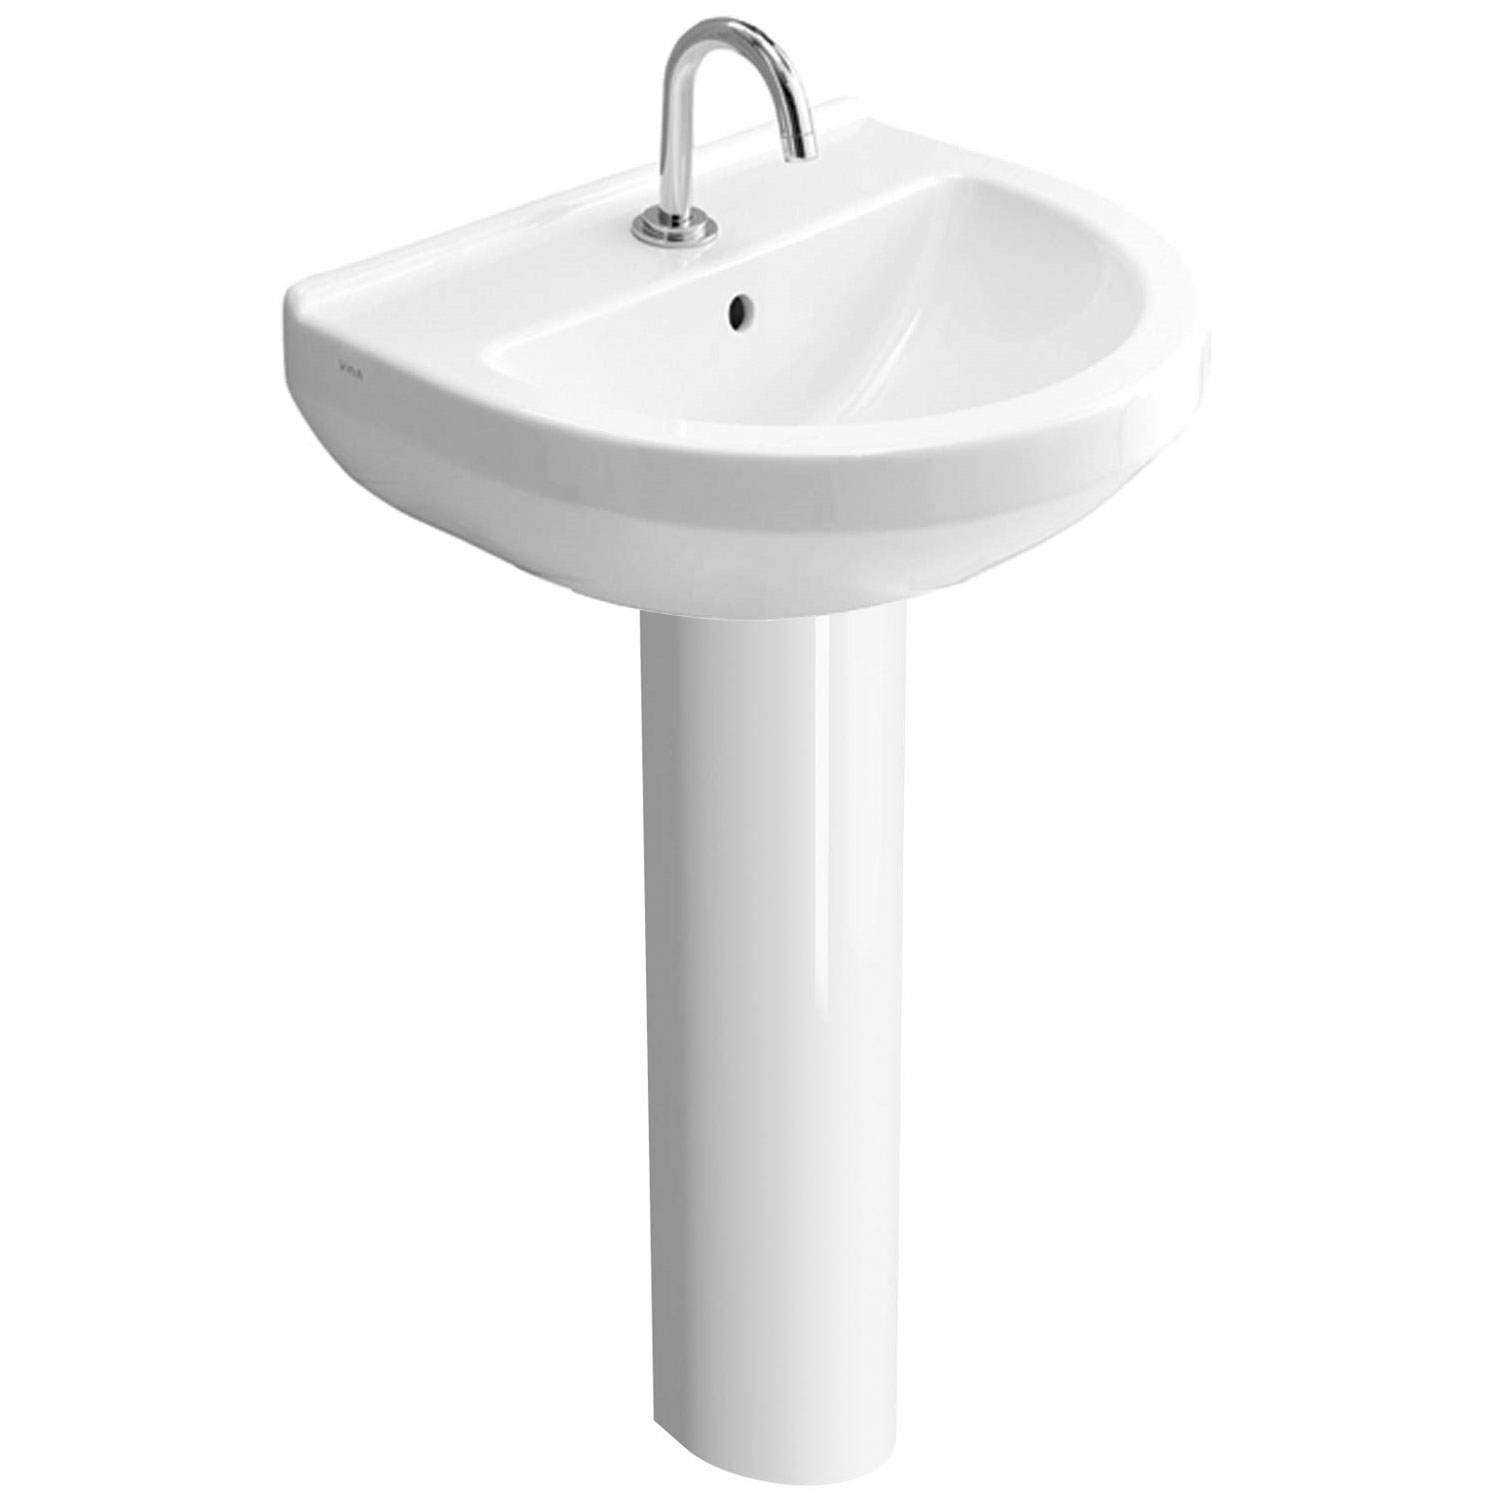 Vitra S50 Round Basin & Full Pedestal 550mm Wide1 Tap Hole-1